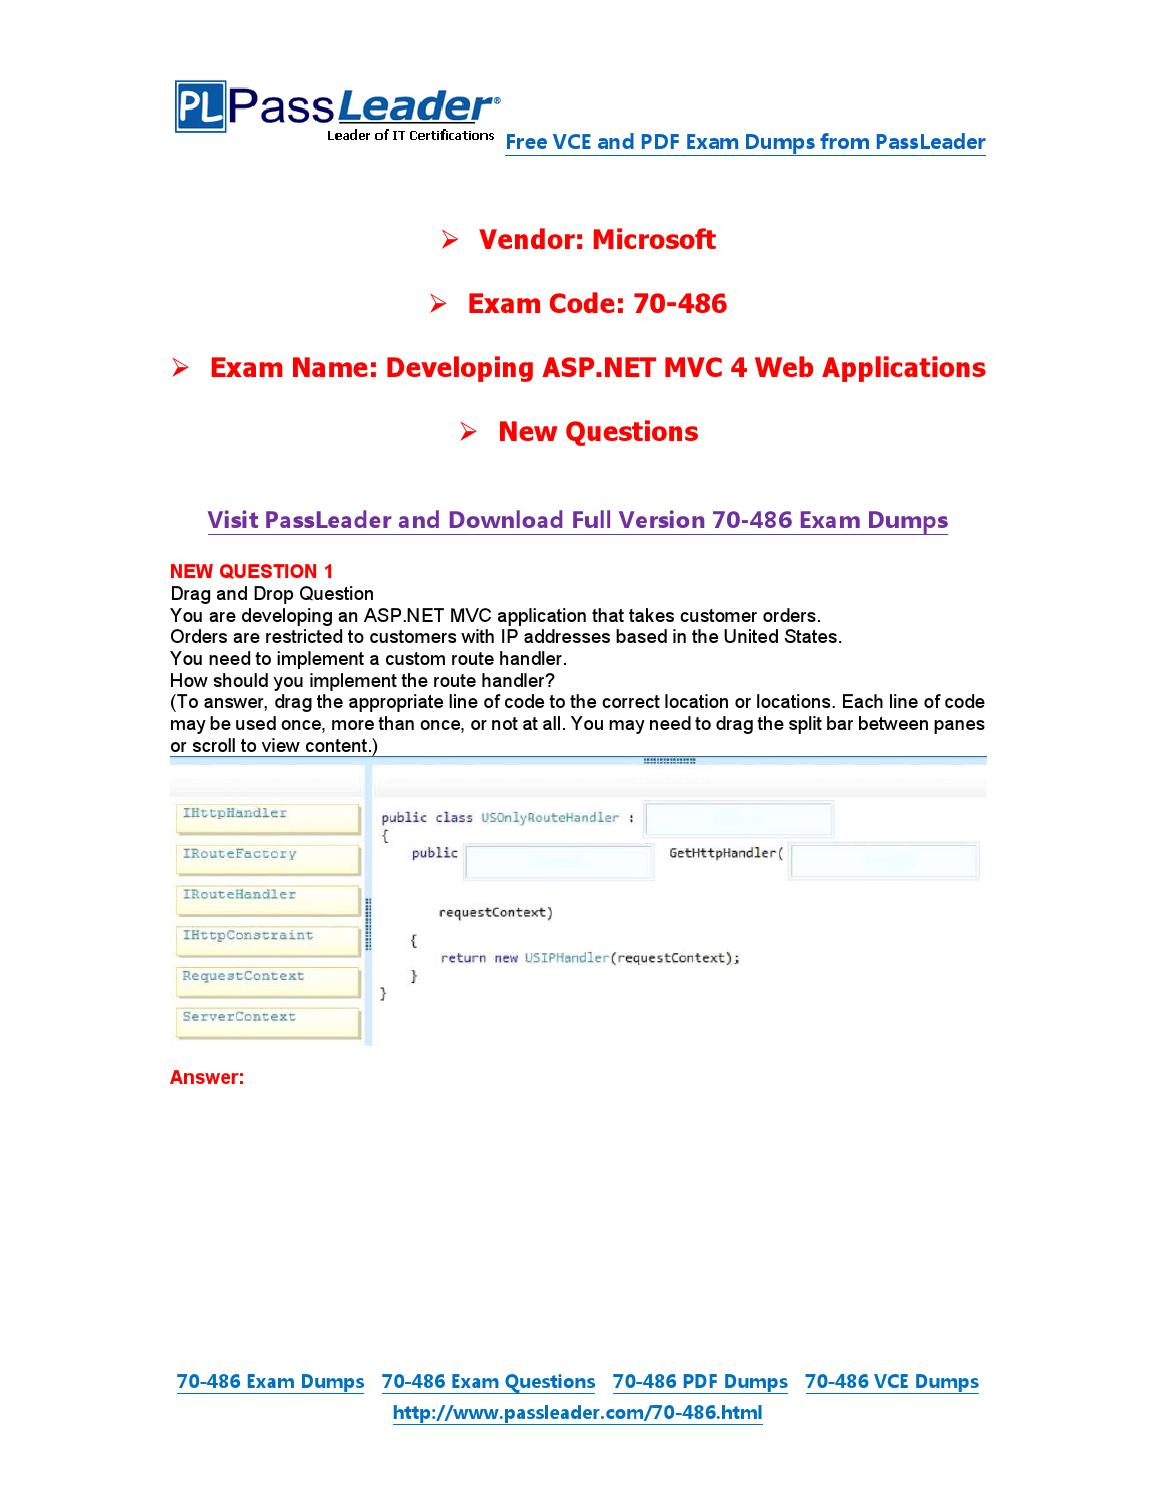 Feb 2016 new 70 486 exam dumps for free vce and pdf by exam feb 2016 new 70 486 exam dumps for free vce and pdf by exam dumps issuu xflitez Image collections